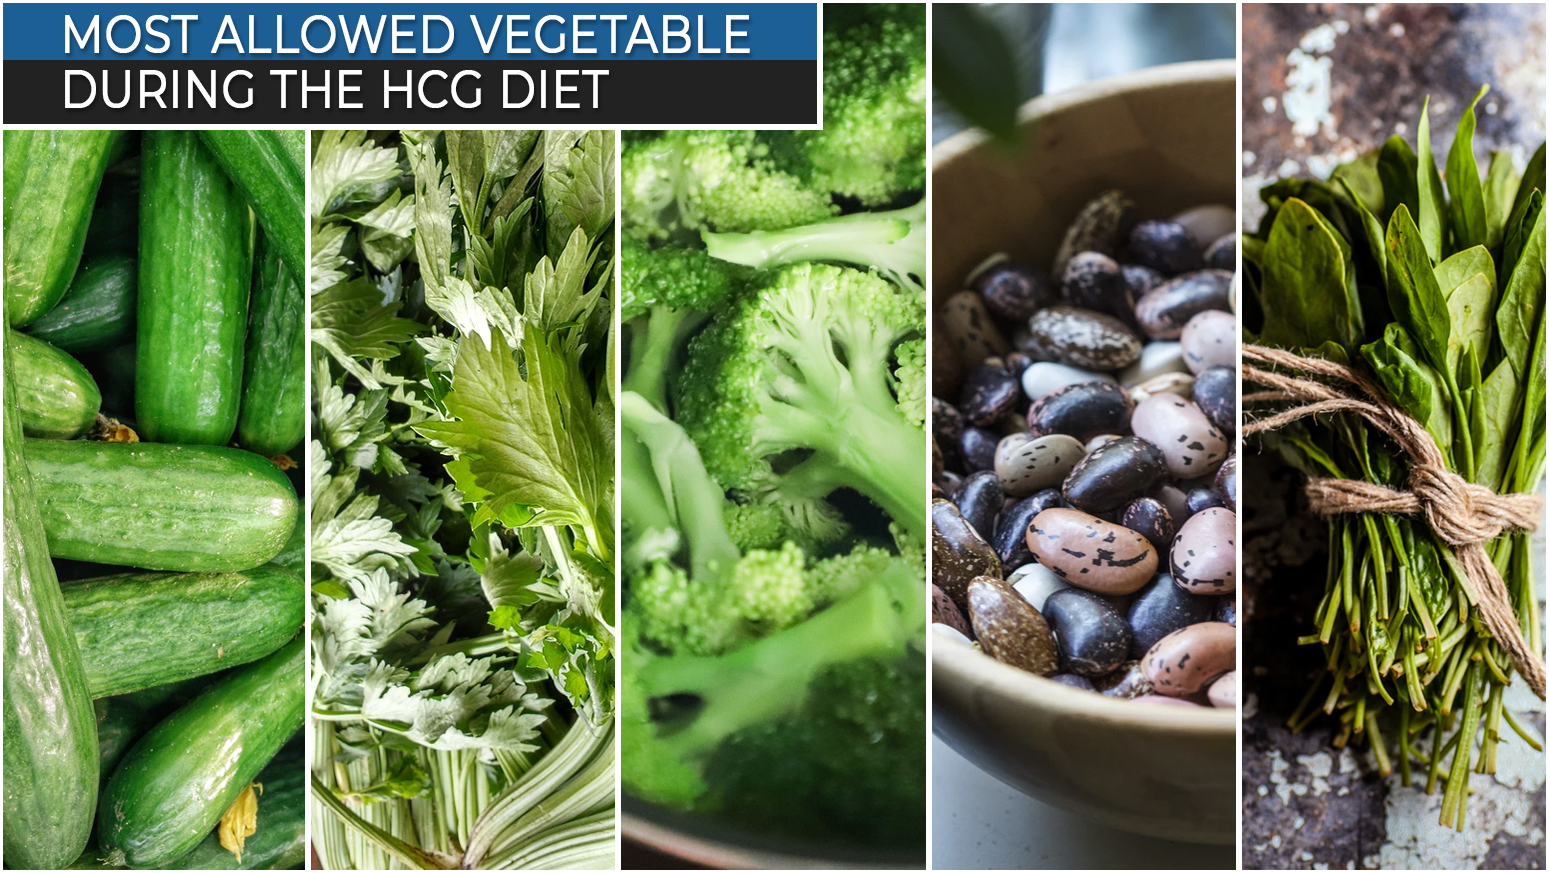 MOST ALLOWED VEGETABLE DURING THE HCG DIET